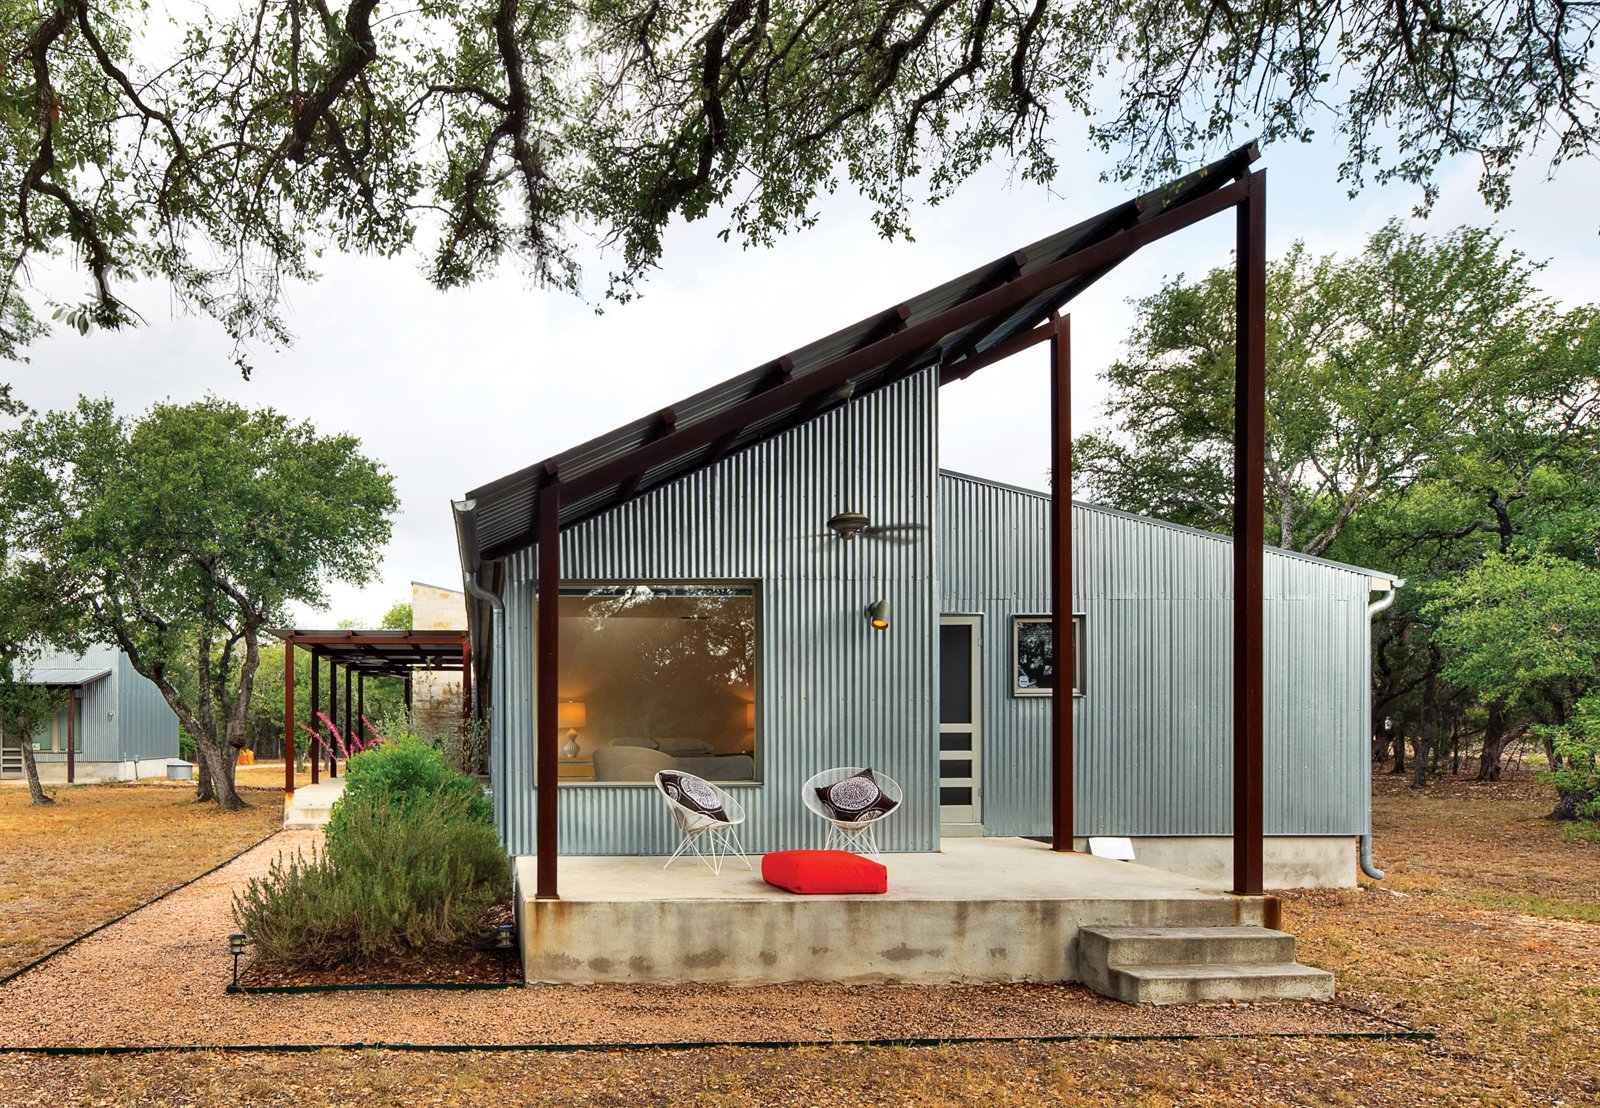 Exterior, Metal Siding Material, Metal Roof Material, and House Building Type For a cost-conscious 2,000-square-foot renovation located 30 minutes outside of Austin, Texas, architect Nick Deaver took a look around for inspiration. He spied galvanized metal cladding on the region's sheds and co-opted the inexpensive, resilient material for his own design.  Photo 1 of 2 in An Affordable Duplex Transformation in Texas